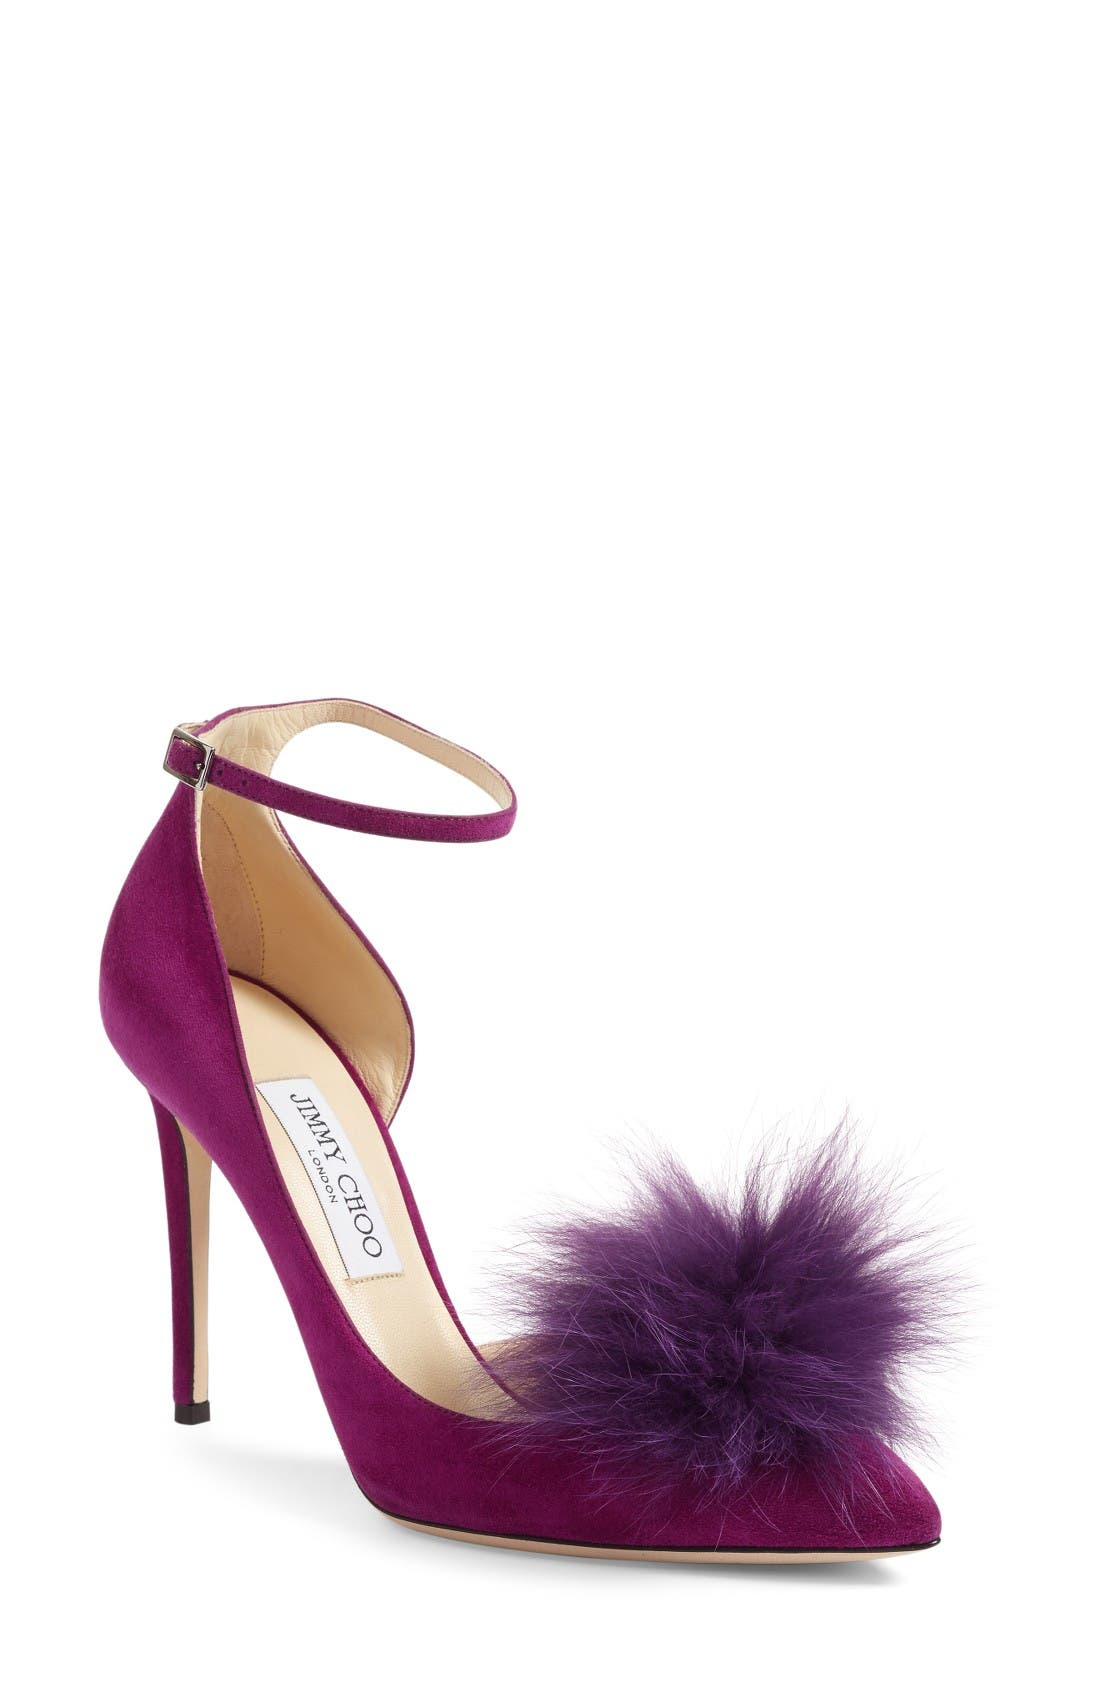 Main Image - Jimmy Choo Rosa Pump with Genuine Fox Fur Pom Charm (Women)